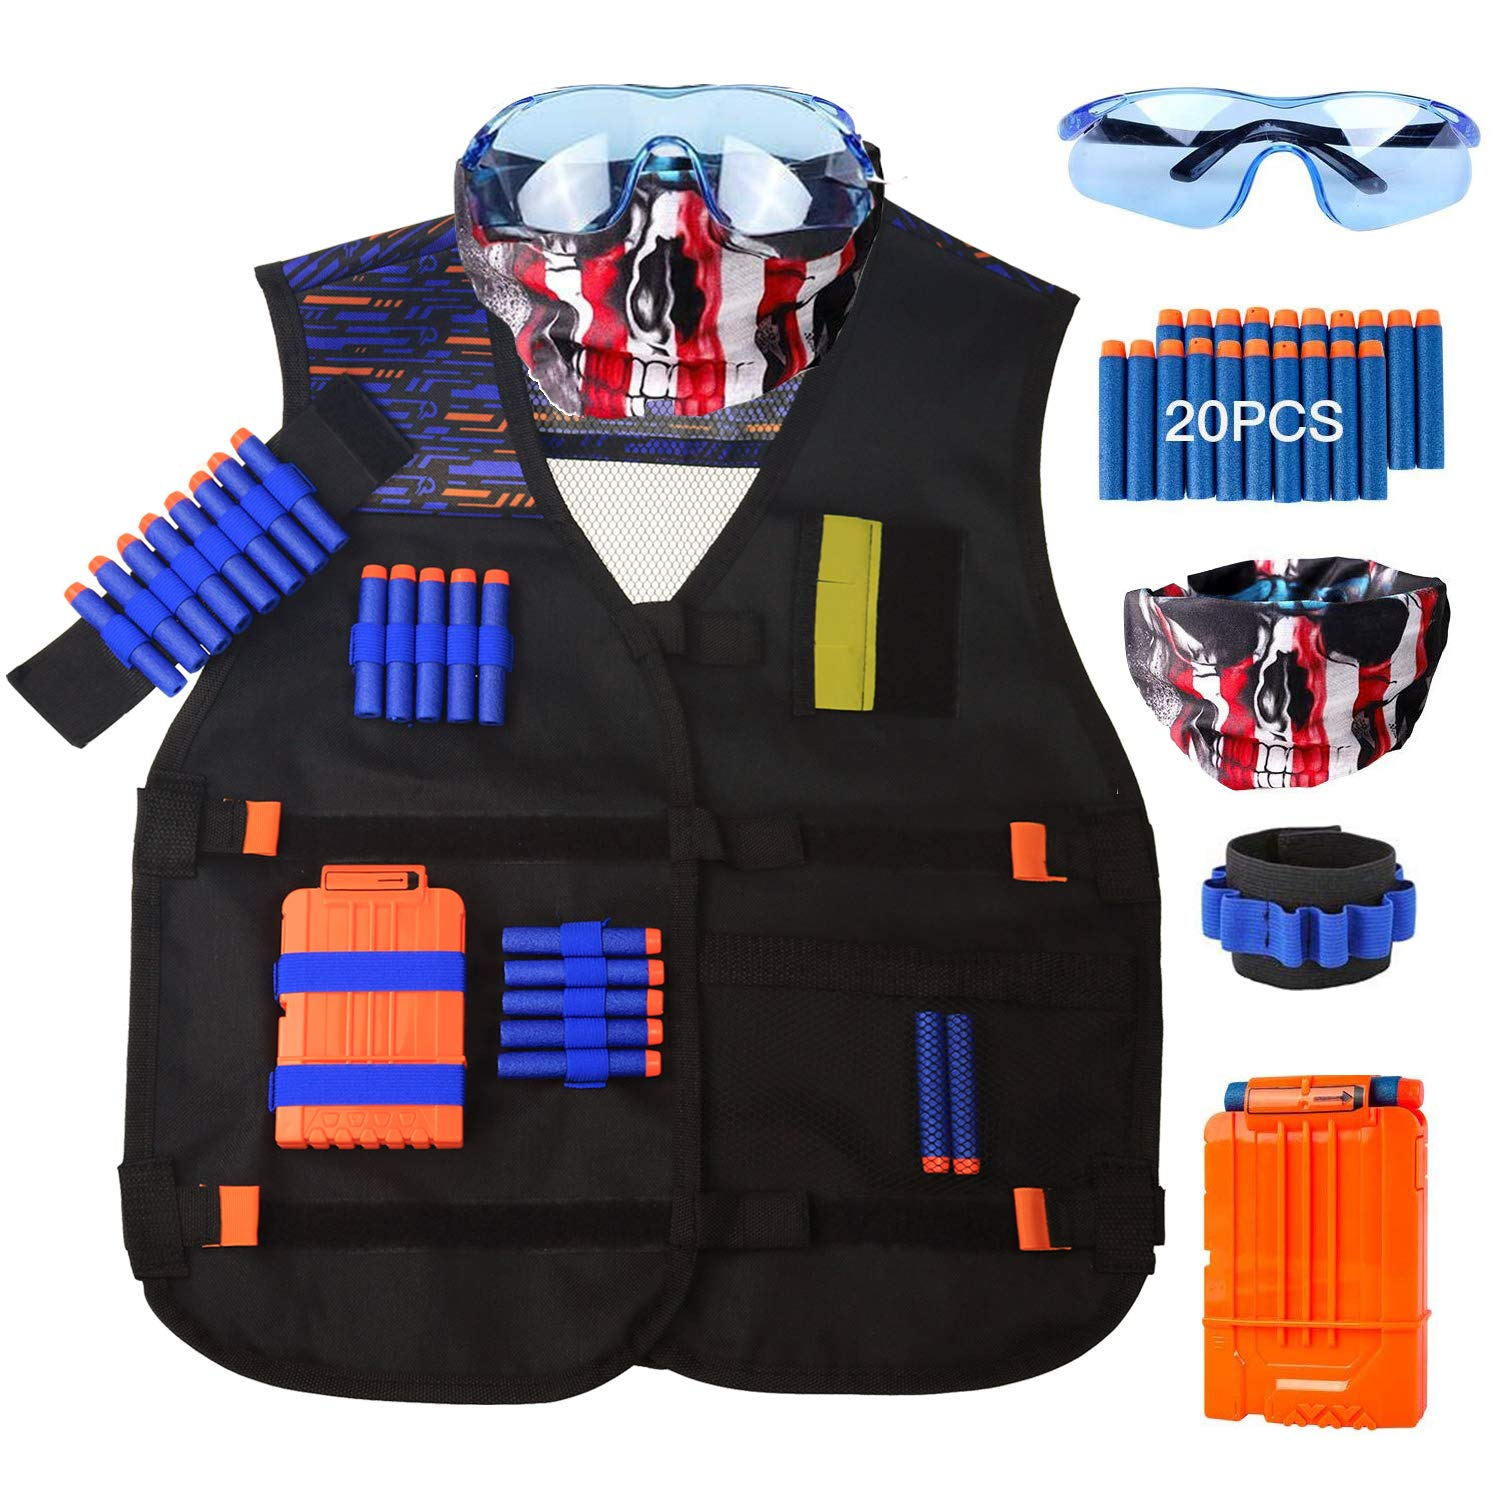 Kids Tactical Vest Kit for Nerf Guns N-Strike Elite Series with Refill Darts, Reload Clips, Tactical Mask and Protective Glasses for Children Boys Teens Gun War Toy Gifts for Birthday and Christmas